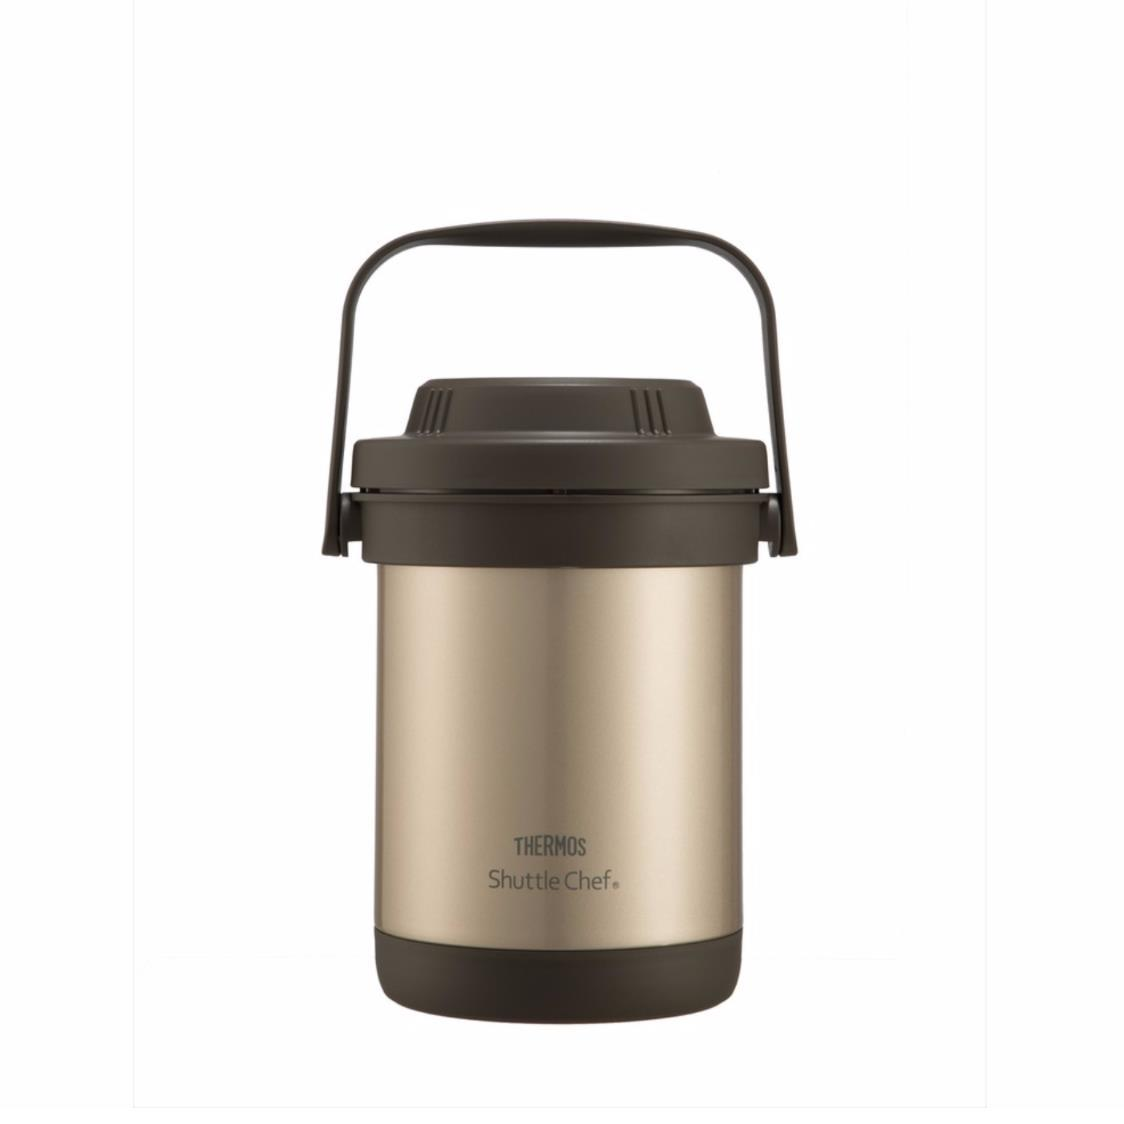 Stainless Steel Shuttle Chef Vacuum Insulated Thermal Cooker Gold 18L